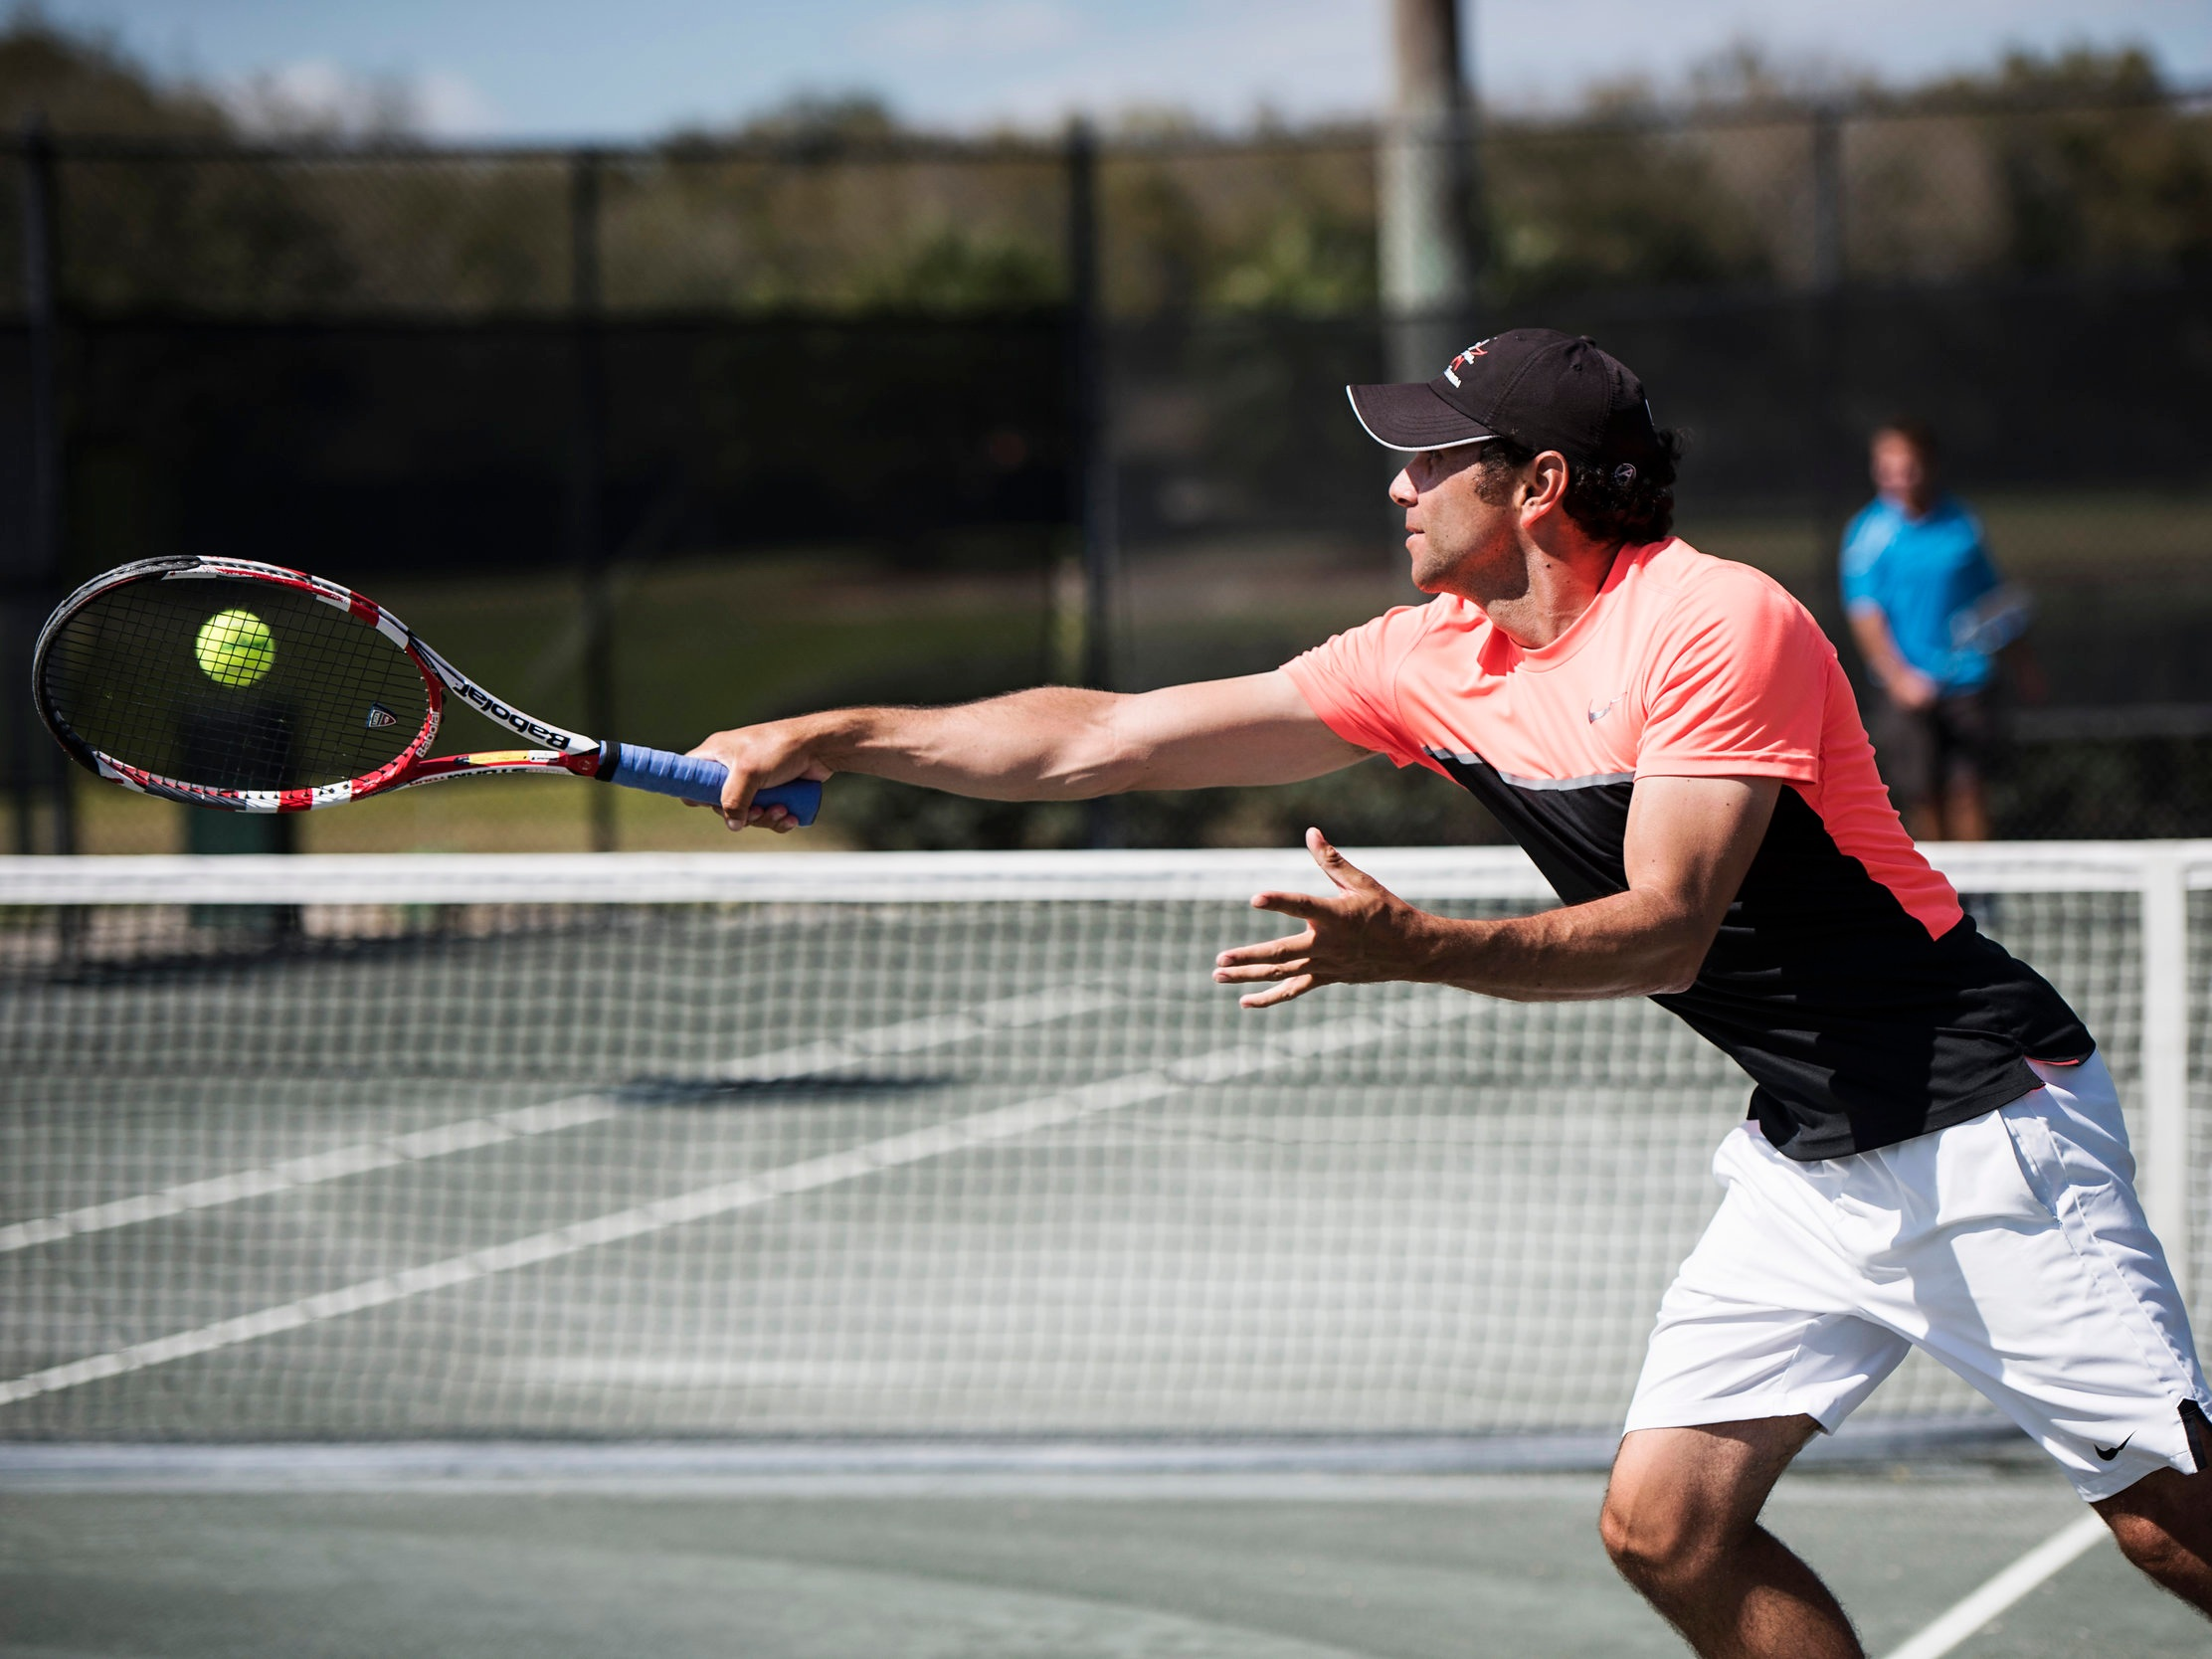 TENNIS & RACQUET - Overlooking Lake Tibet Butler, the Tennis Center features six Har-Tru clay courts, one Plexi Cushion court and a padel court, along with private locker rooms and a multi-sport court. Featured programs cater to all levels of play.